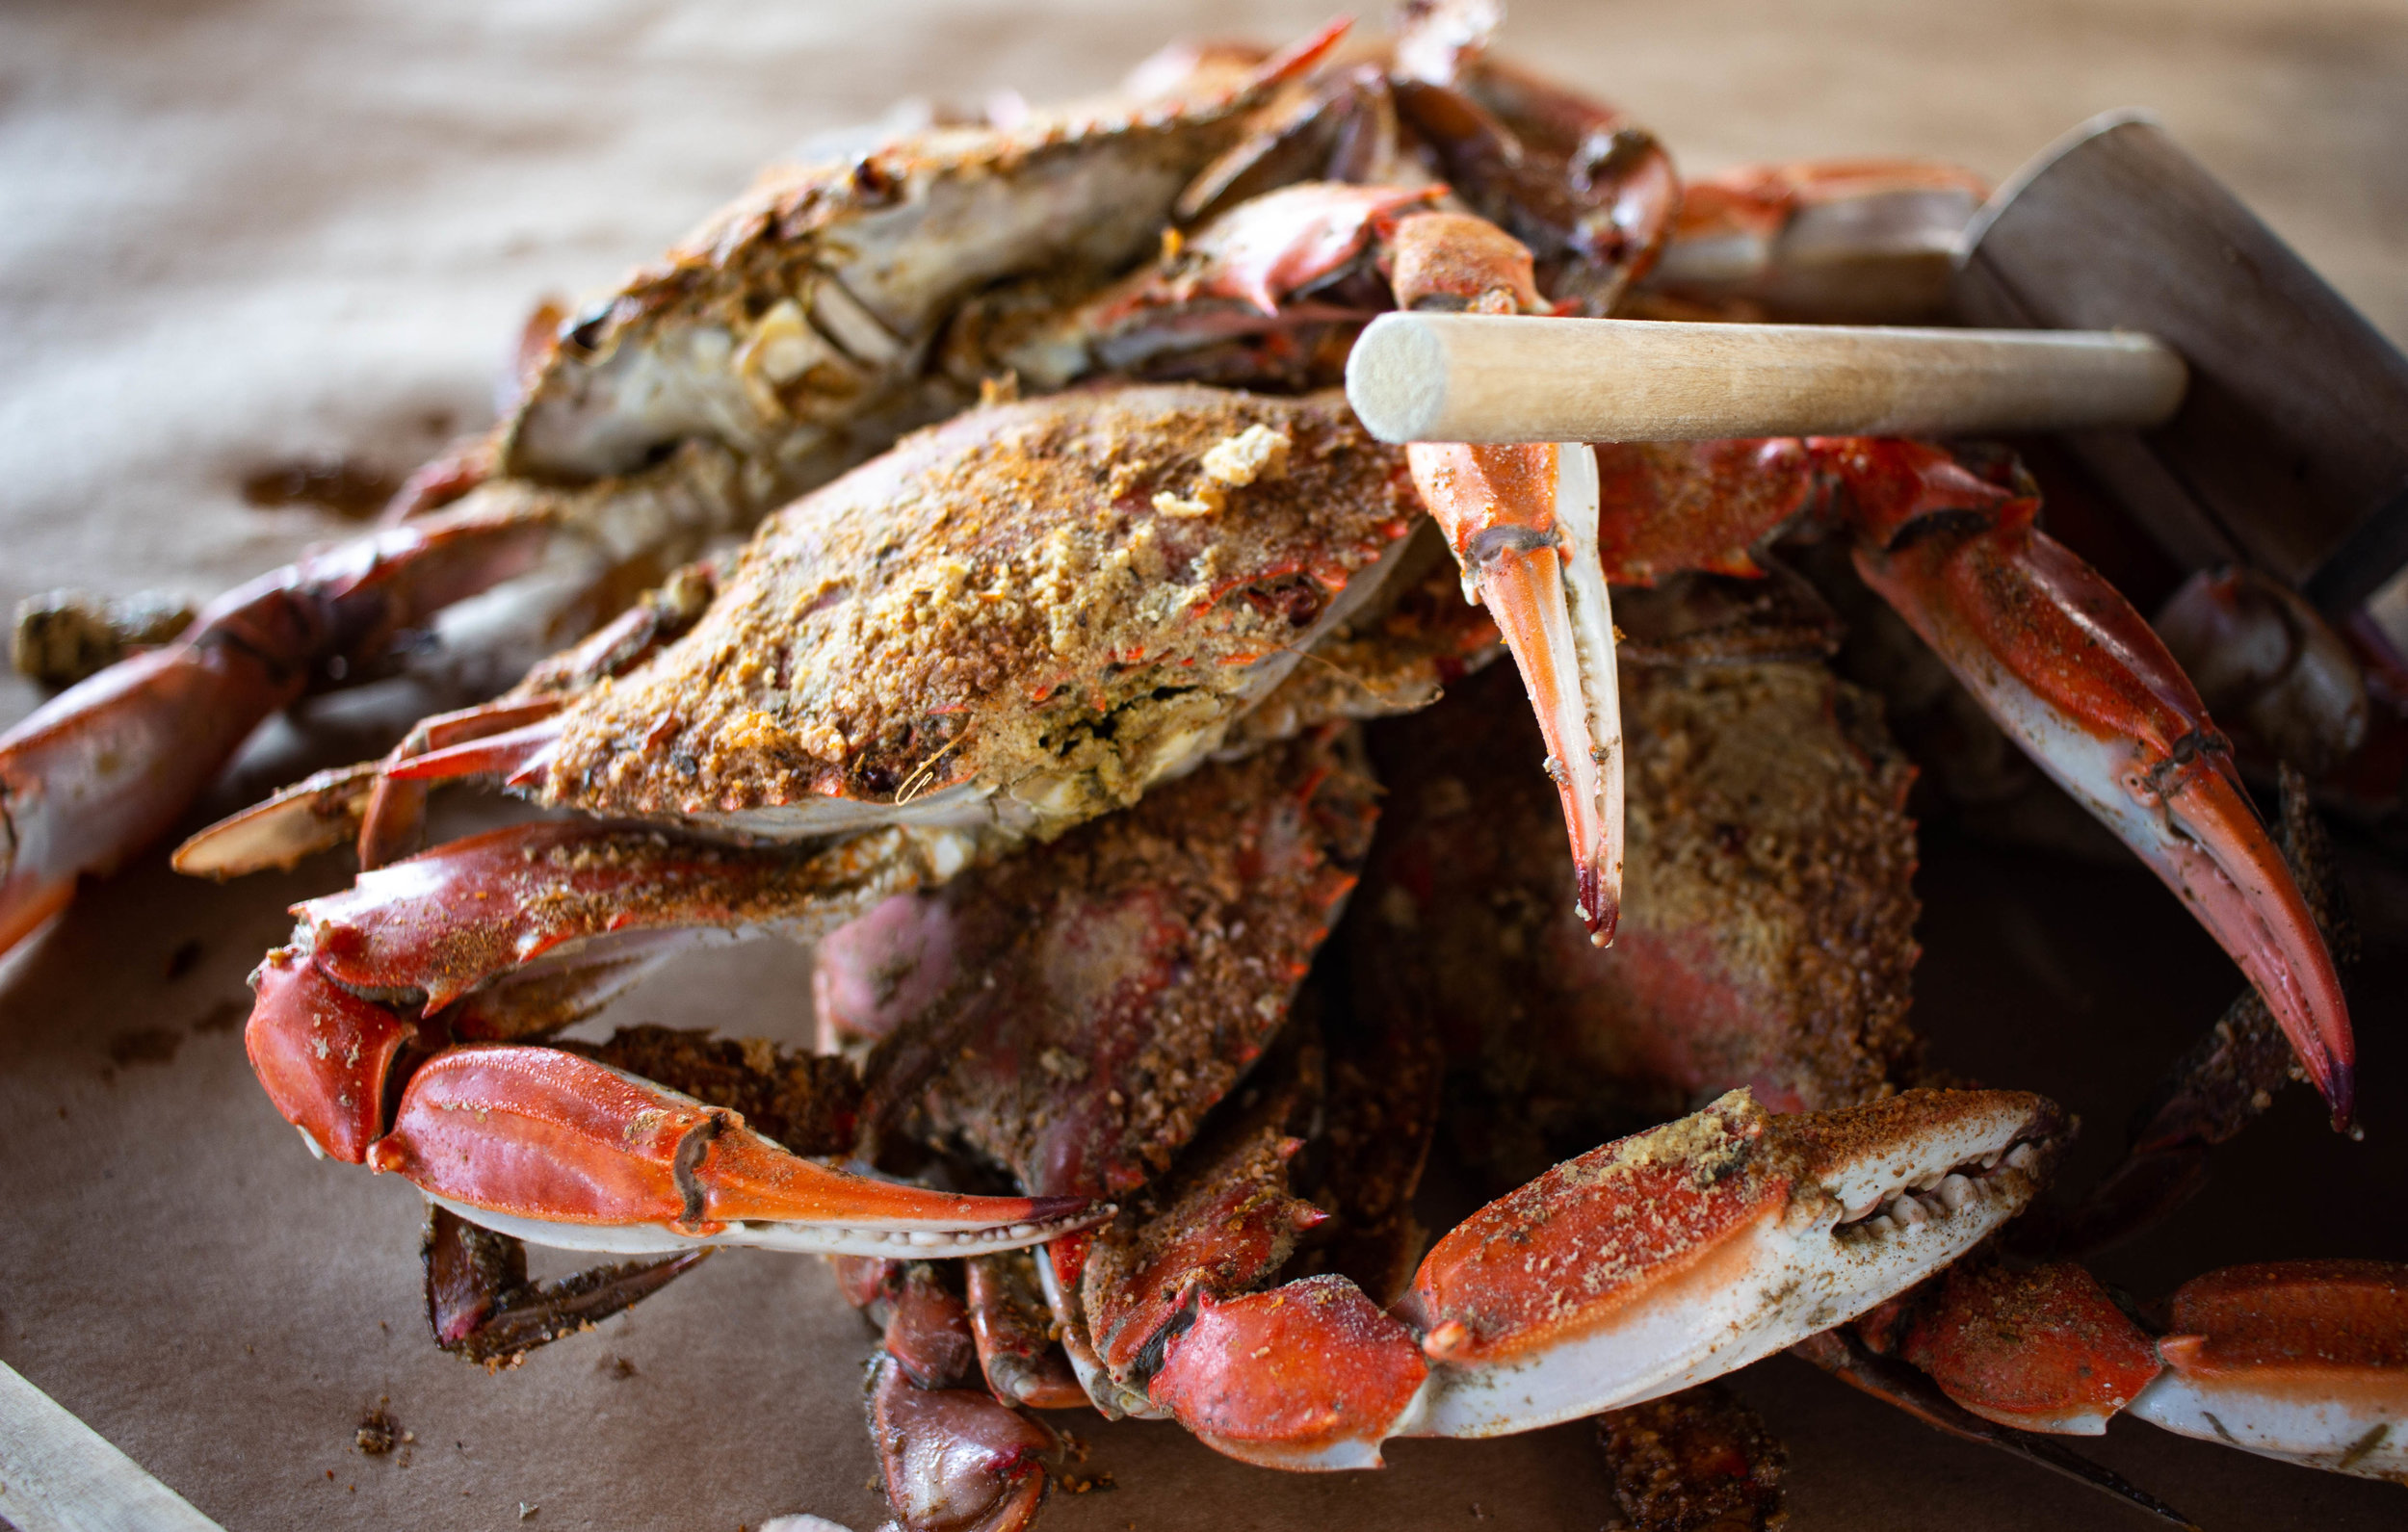 Crab Feast - 2019 07 31 (1 of 3).jpg